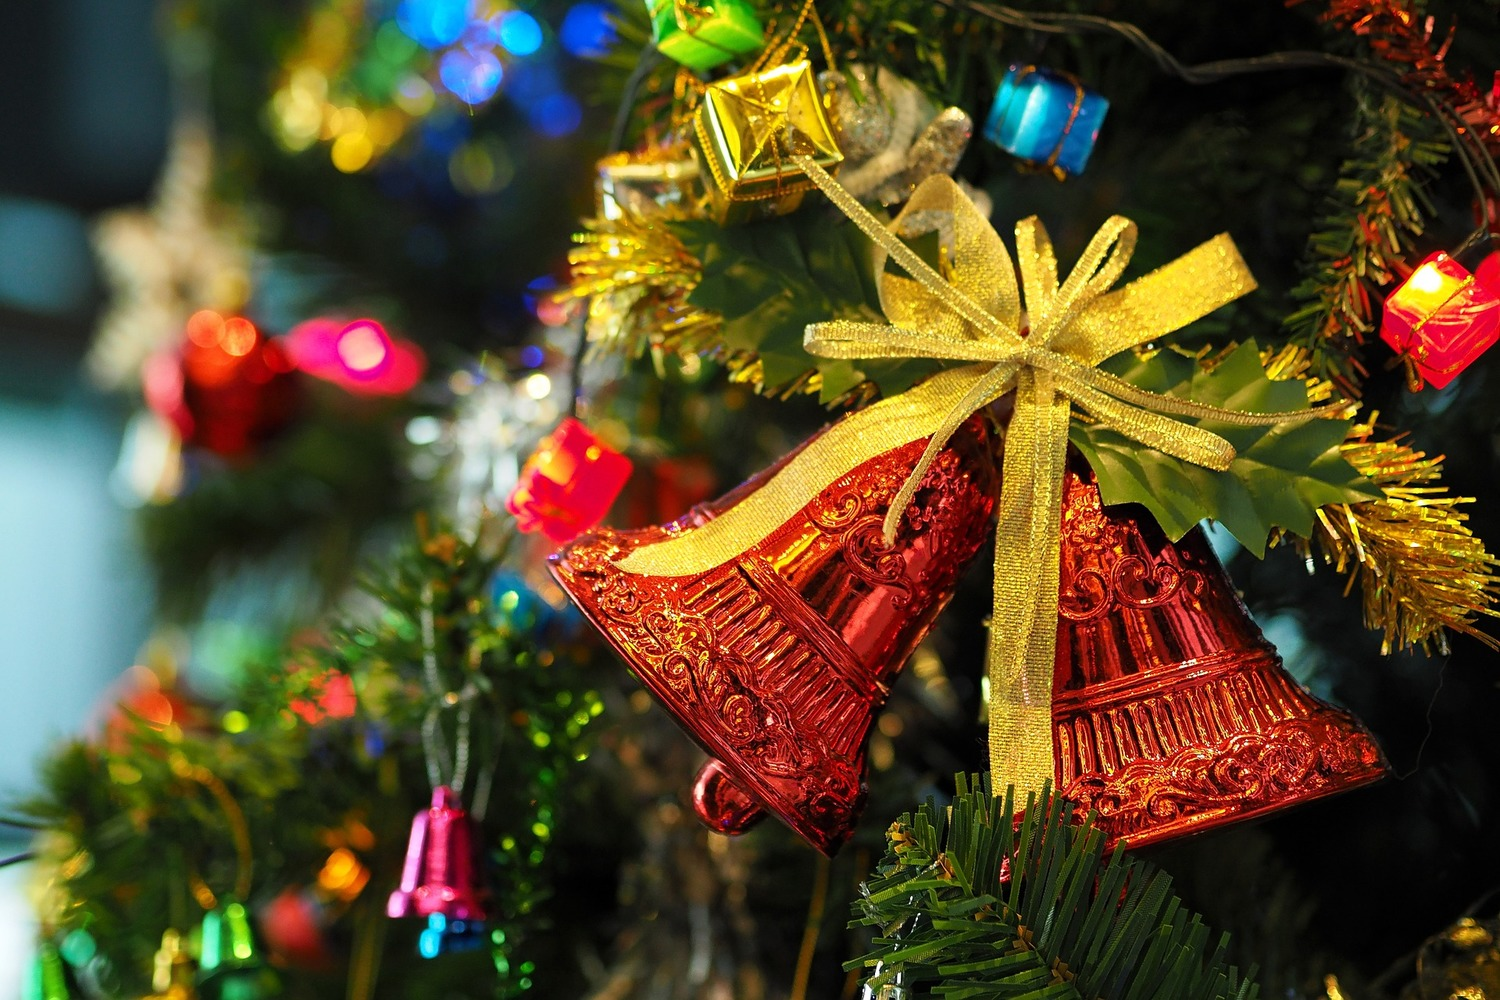 mychristmas how a former muslim learnt the meaning of saying merry christmas - Merry Christmas Meaning